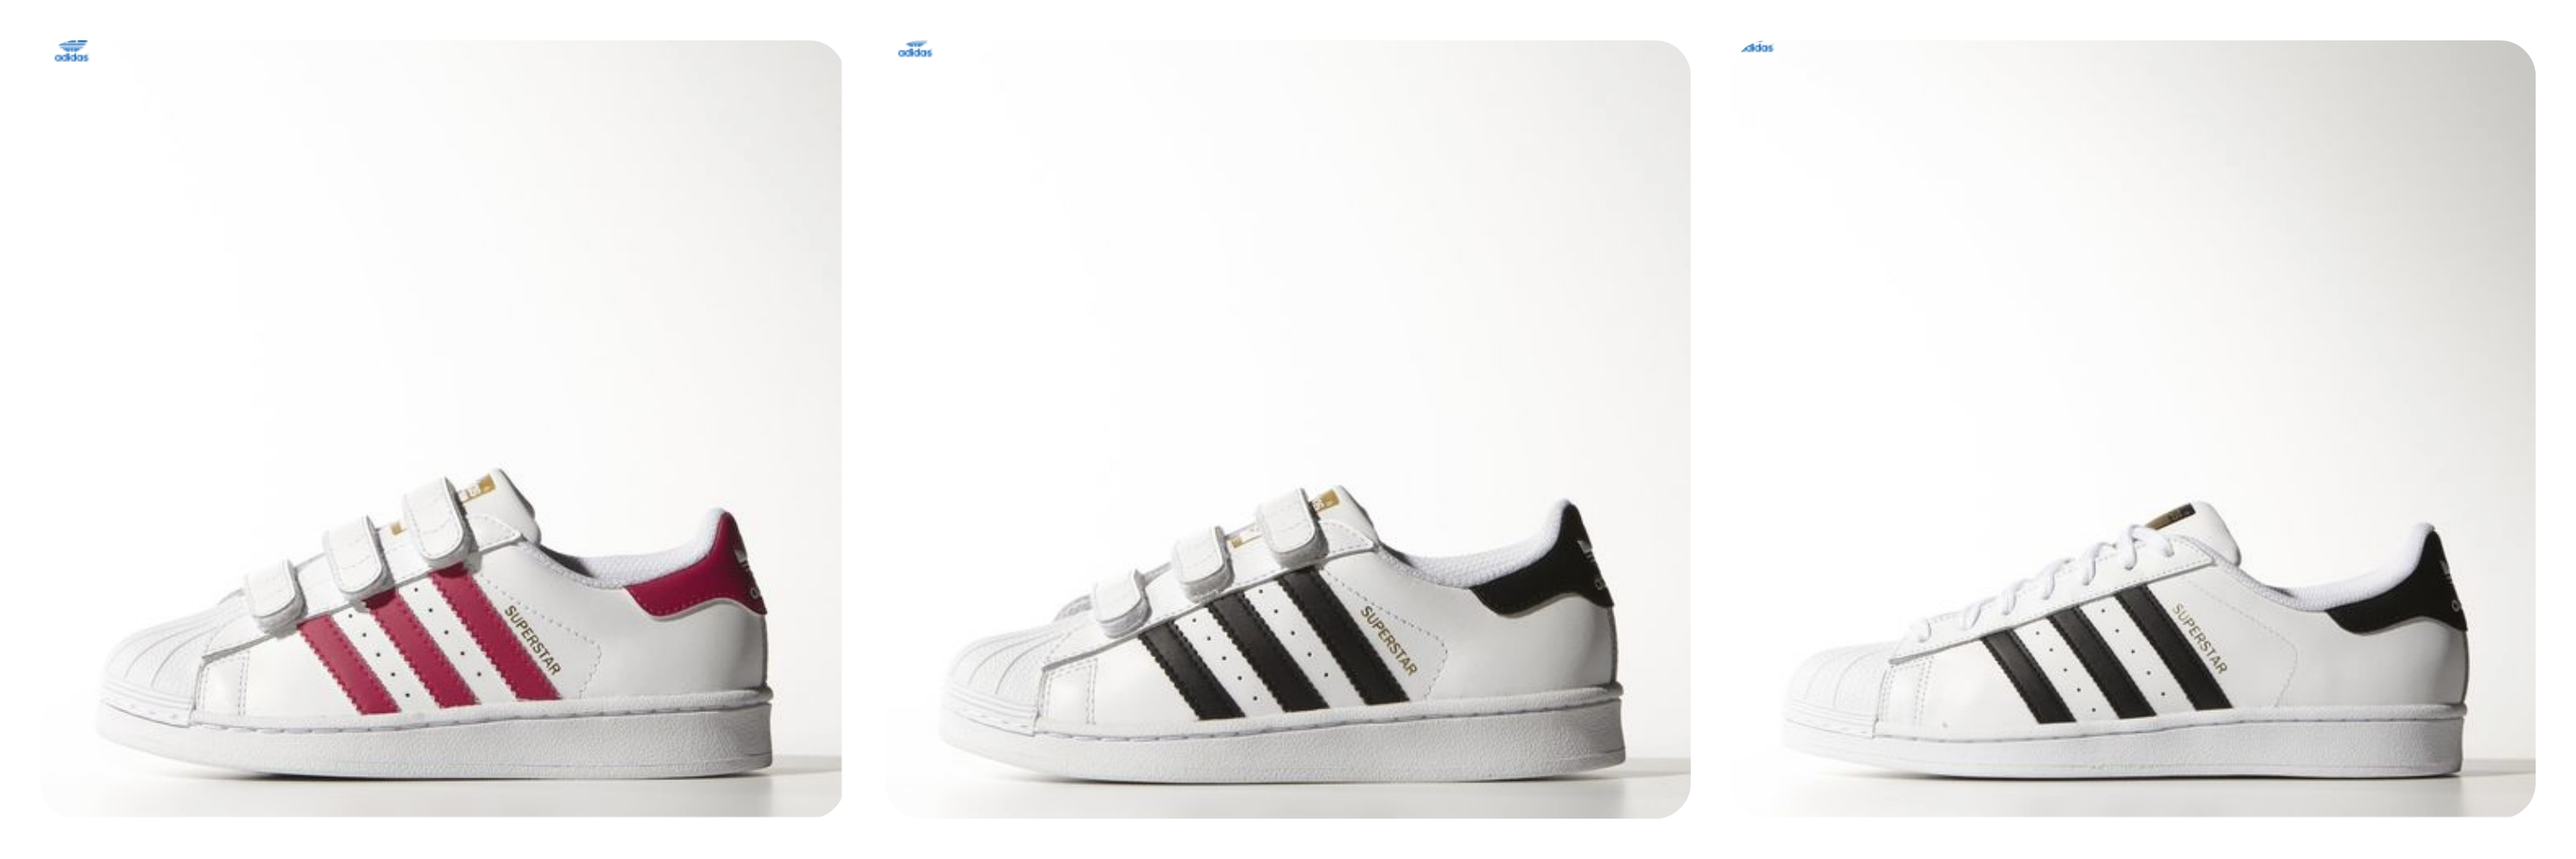 adidas superstar zwart wit maat 35